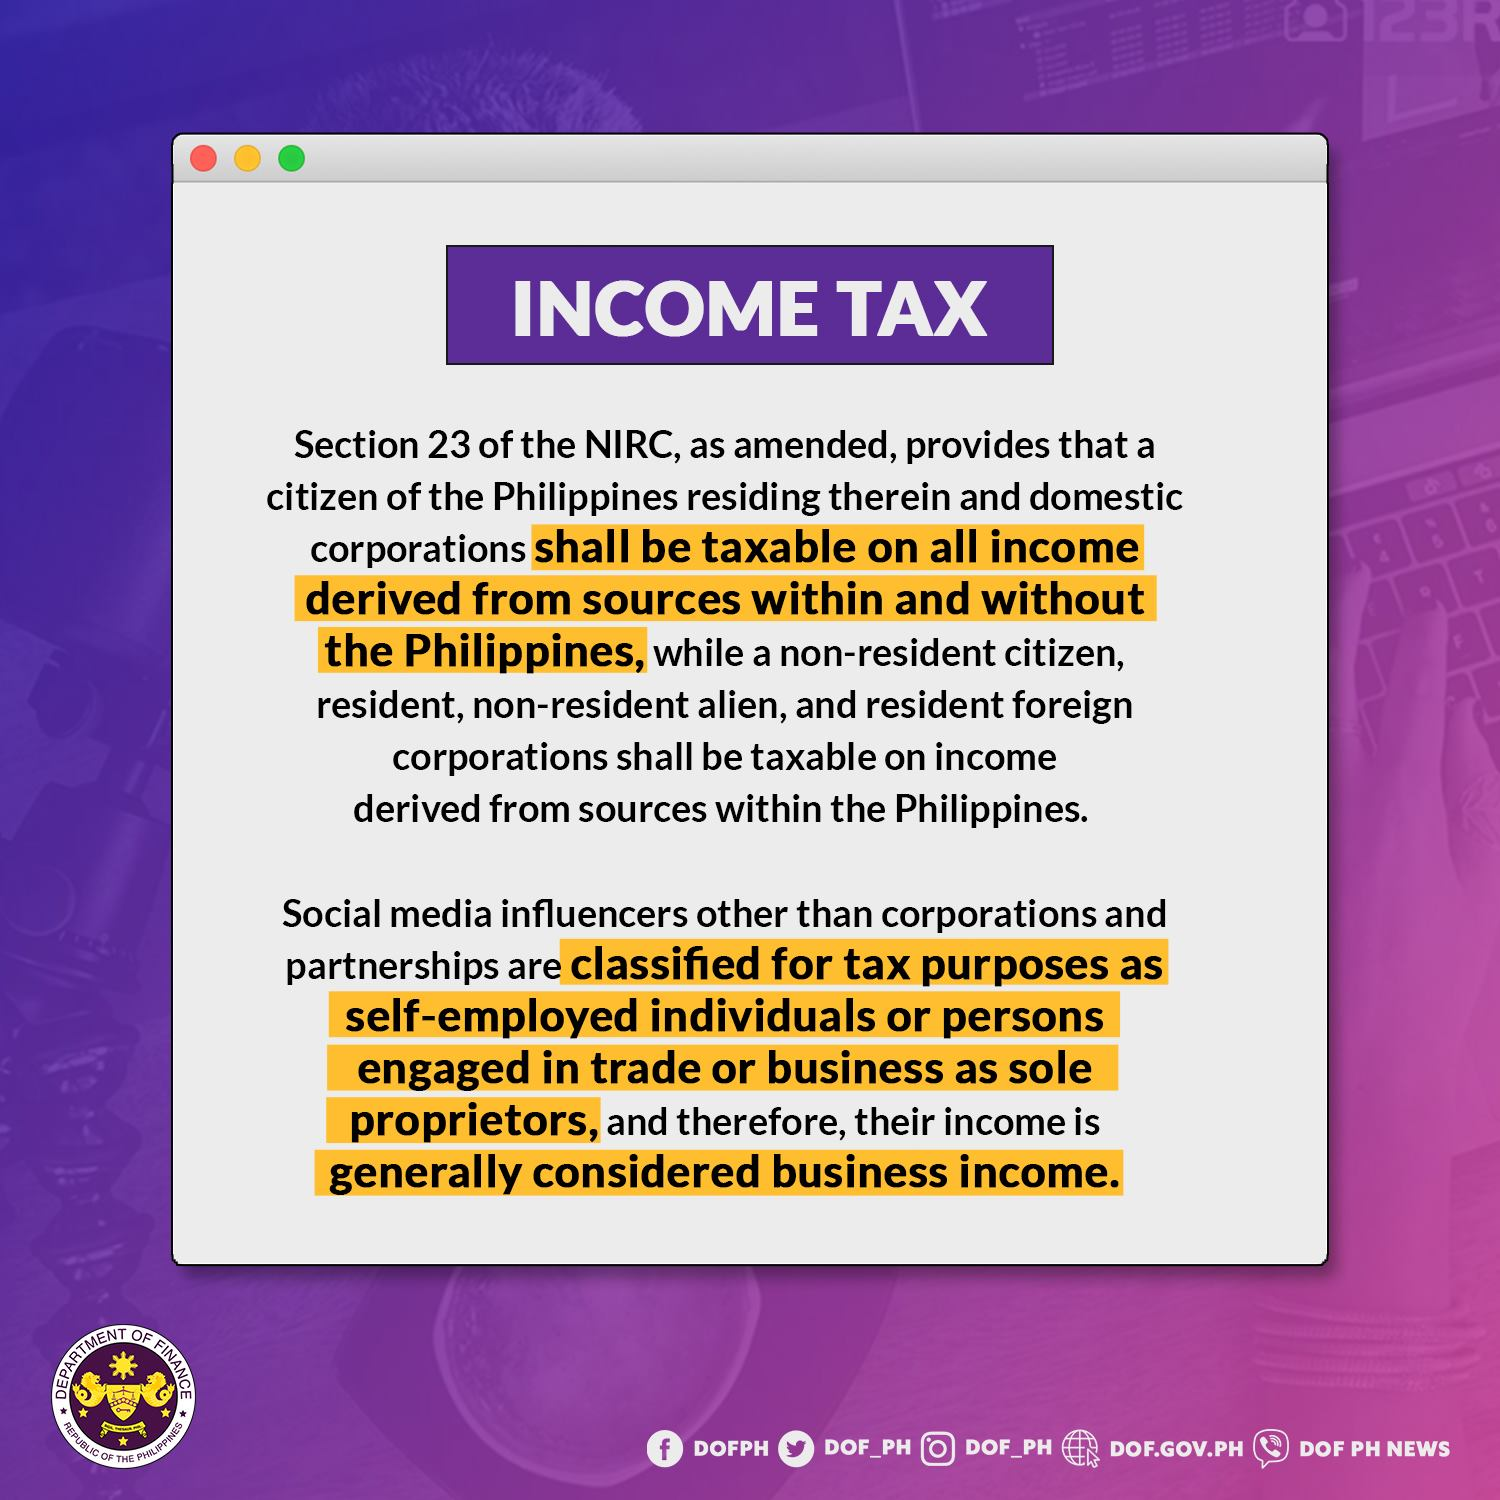 Income Tax: Section 23 of the NIRC